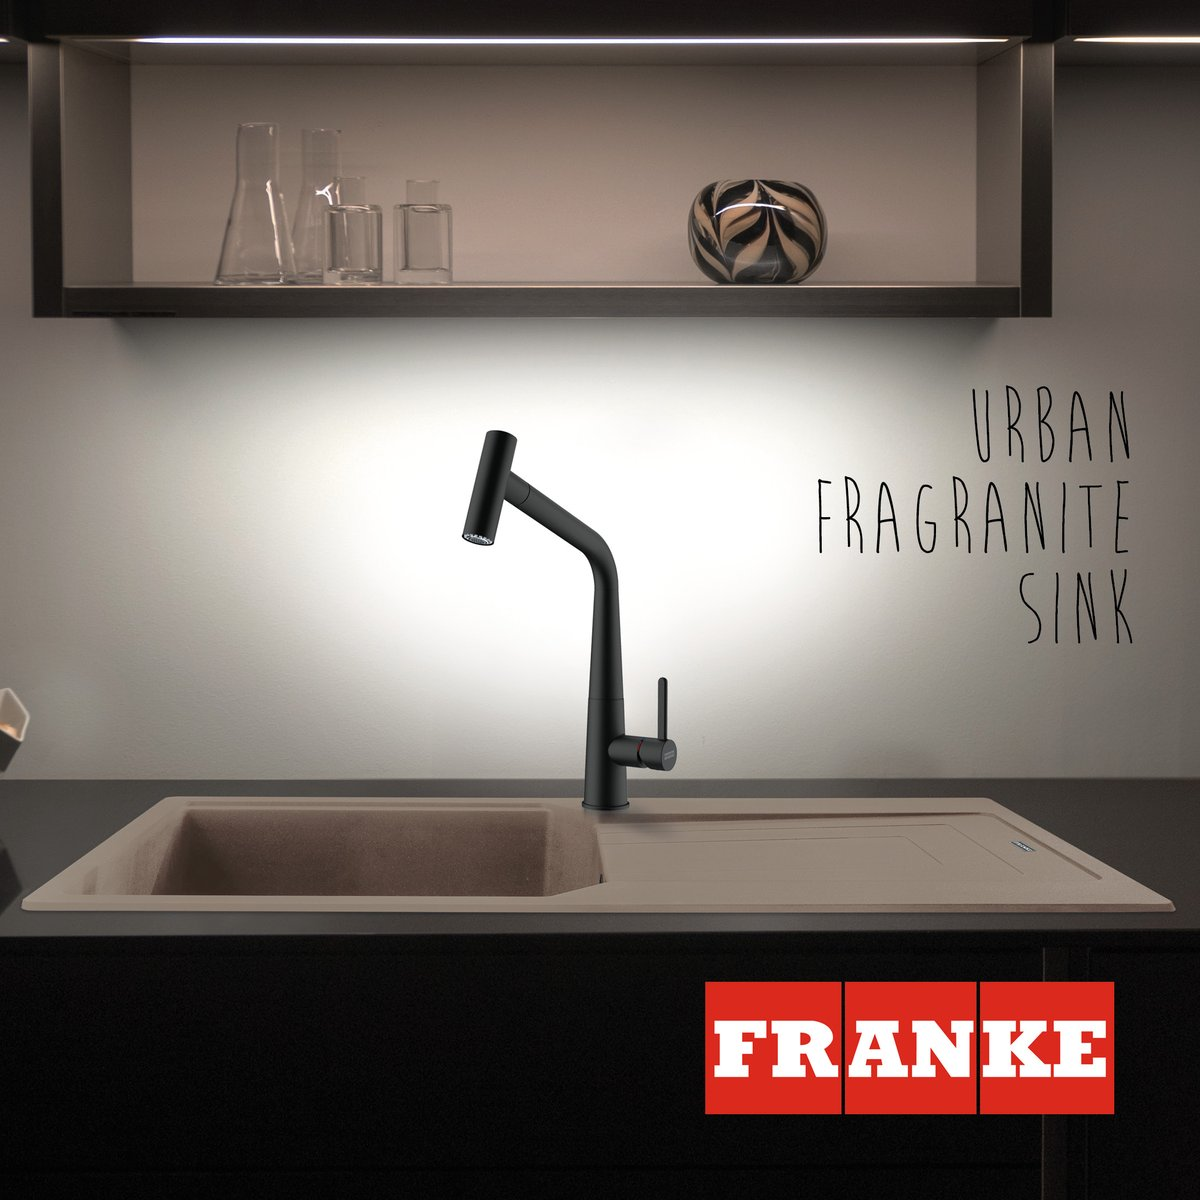 Did you know all our Fragranite sinks, including the stylish Urban, feature Sanitized® protection to help keep them clean and hygienic? Bacterial growth is reduced by 99% providing long lasting protection. Stylish and practical - it's win-win! franke.com/content/corpor…